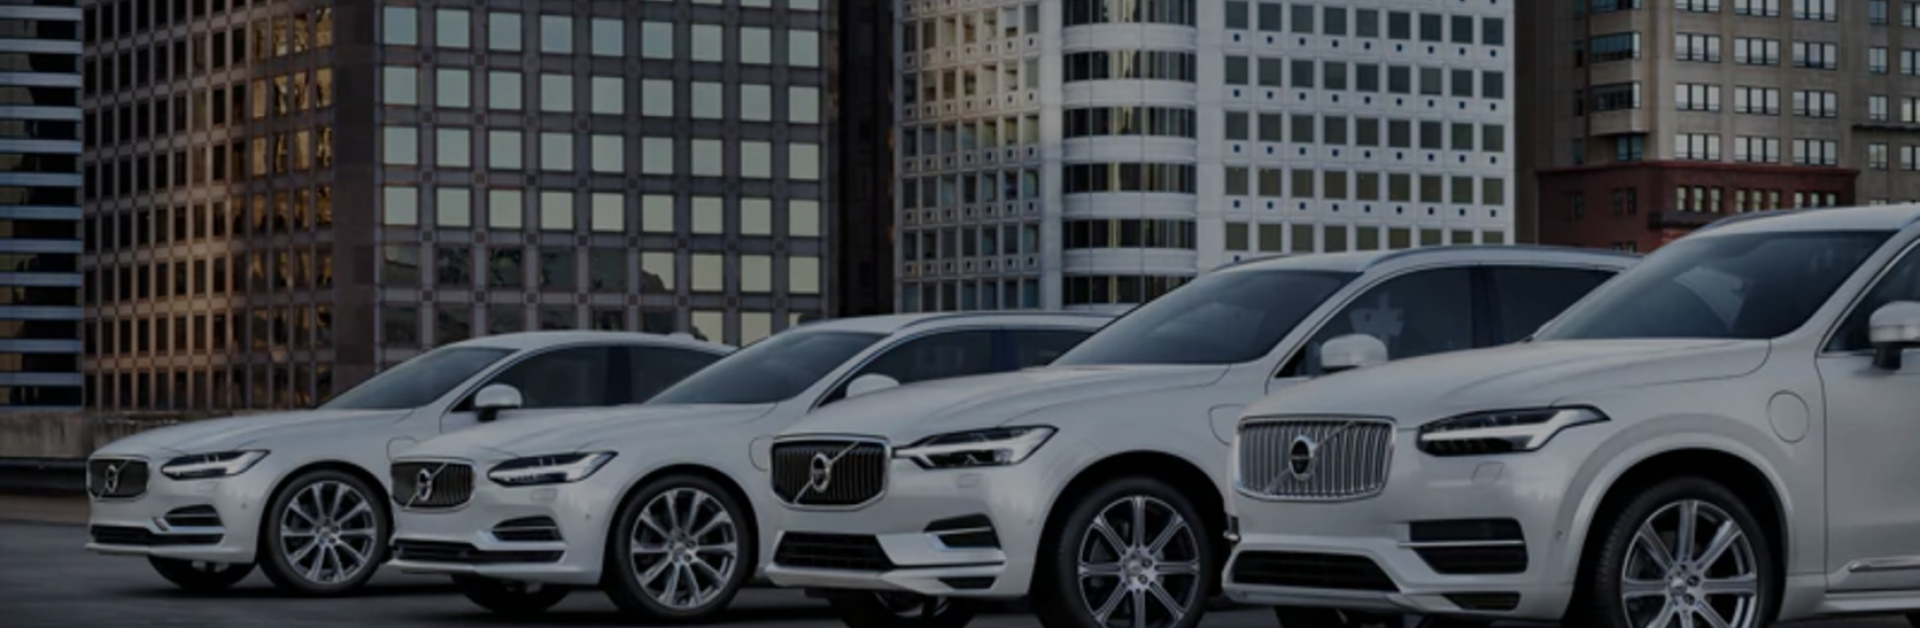 Выгода до 250 000 руб на Volvo V60 Cross Country по программе Трейд-ин